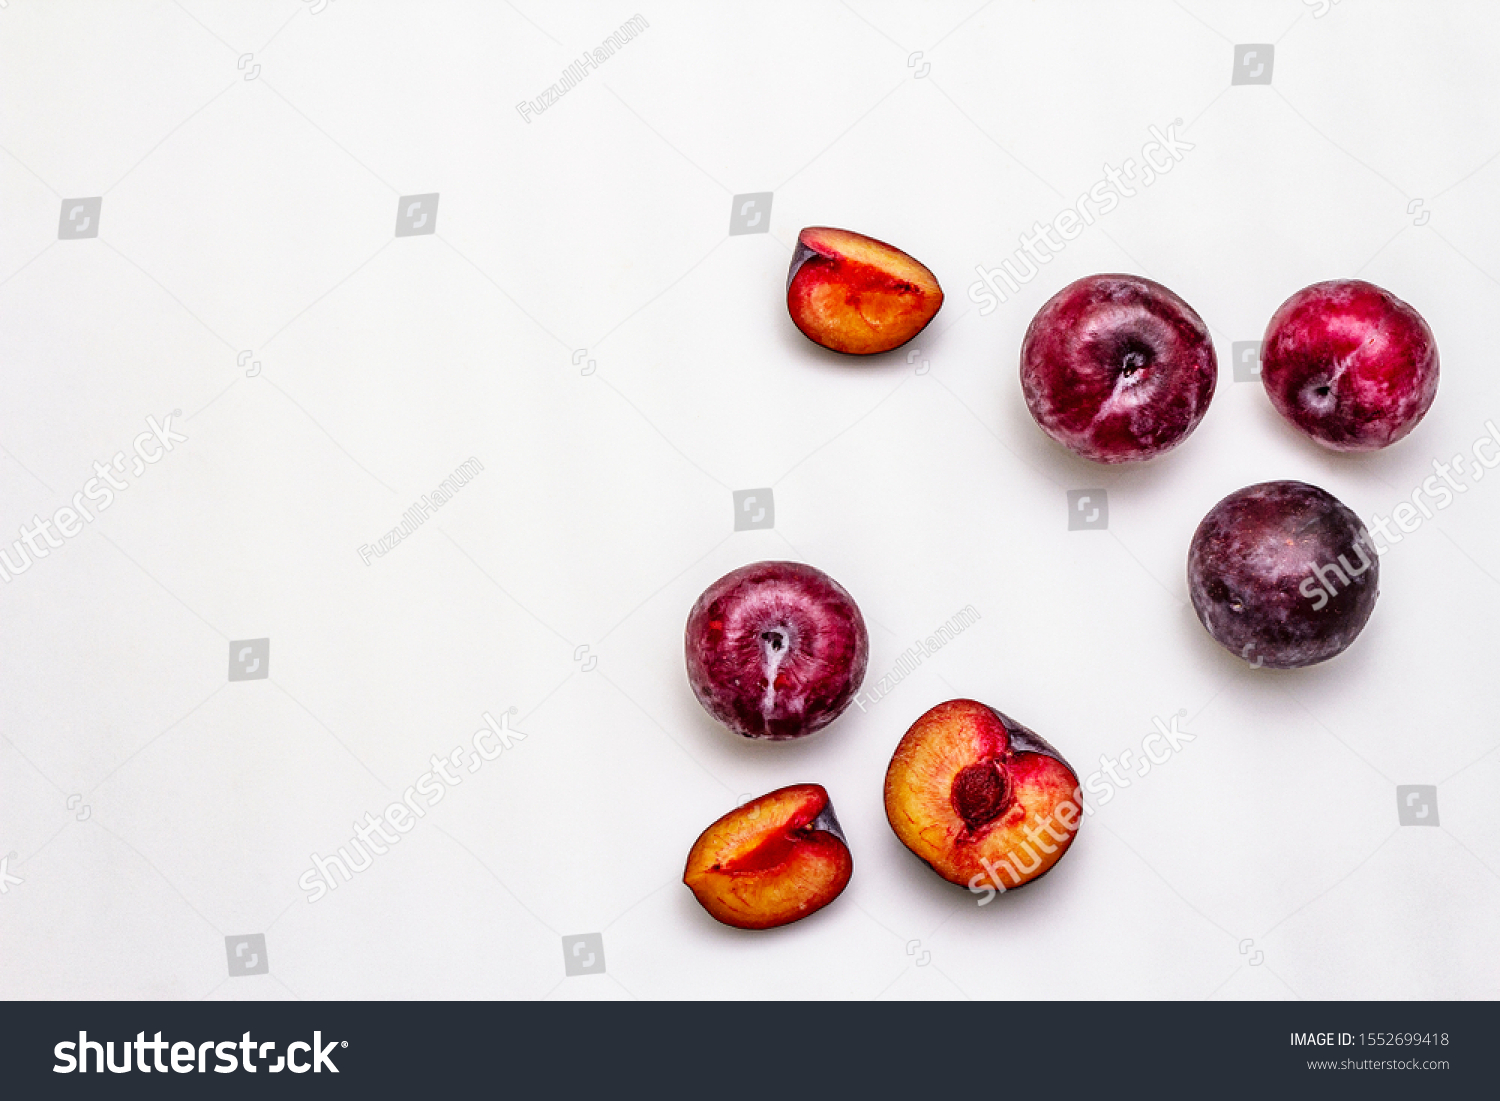 Ripe large purple plums. Fresh whole fruits, half sliced, seeds. Isolated on white background, copy space, top view #1552699418